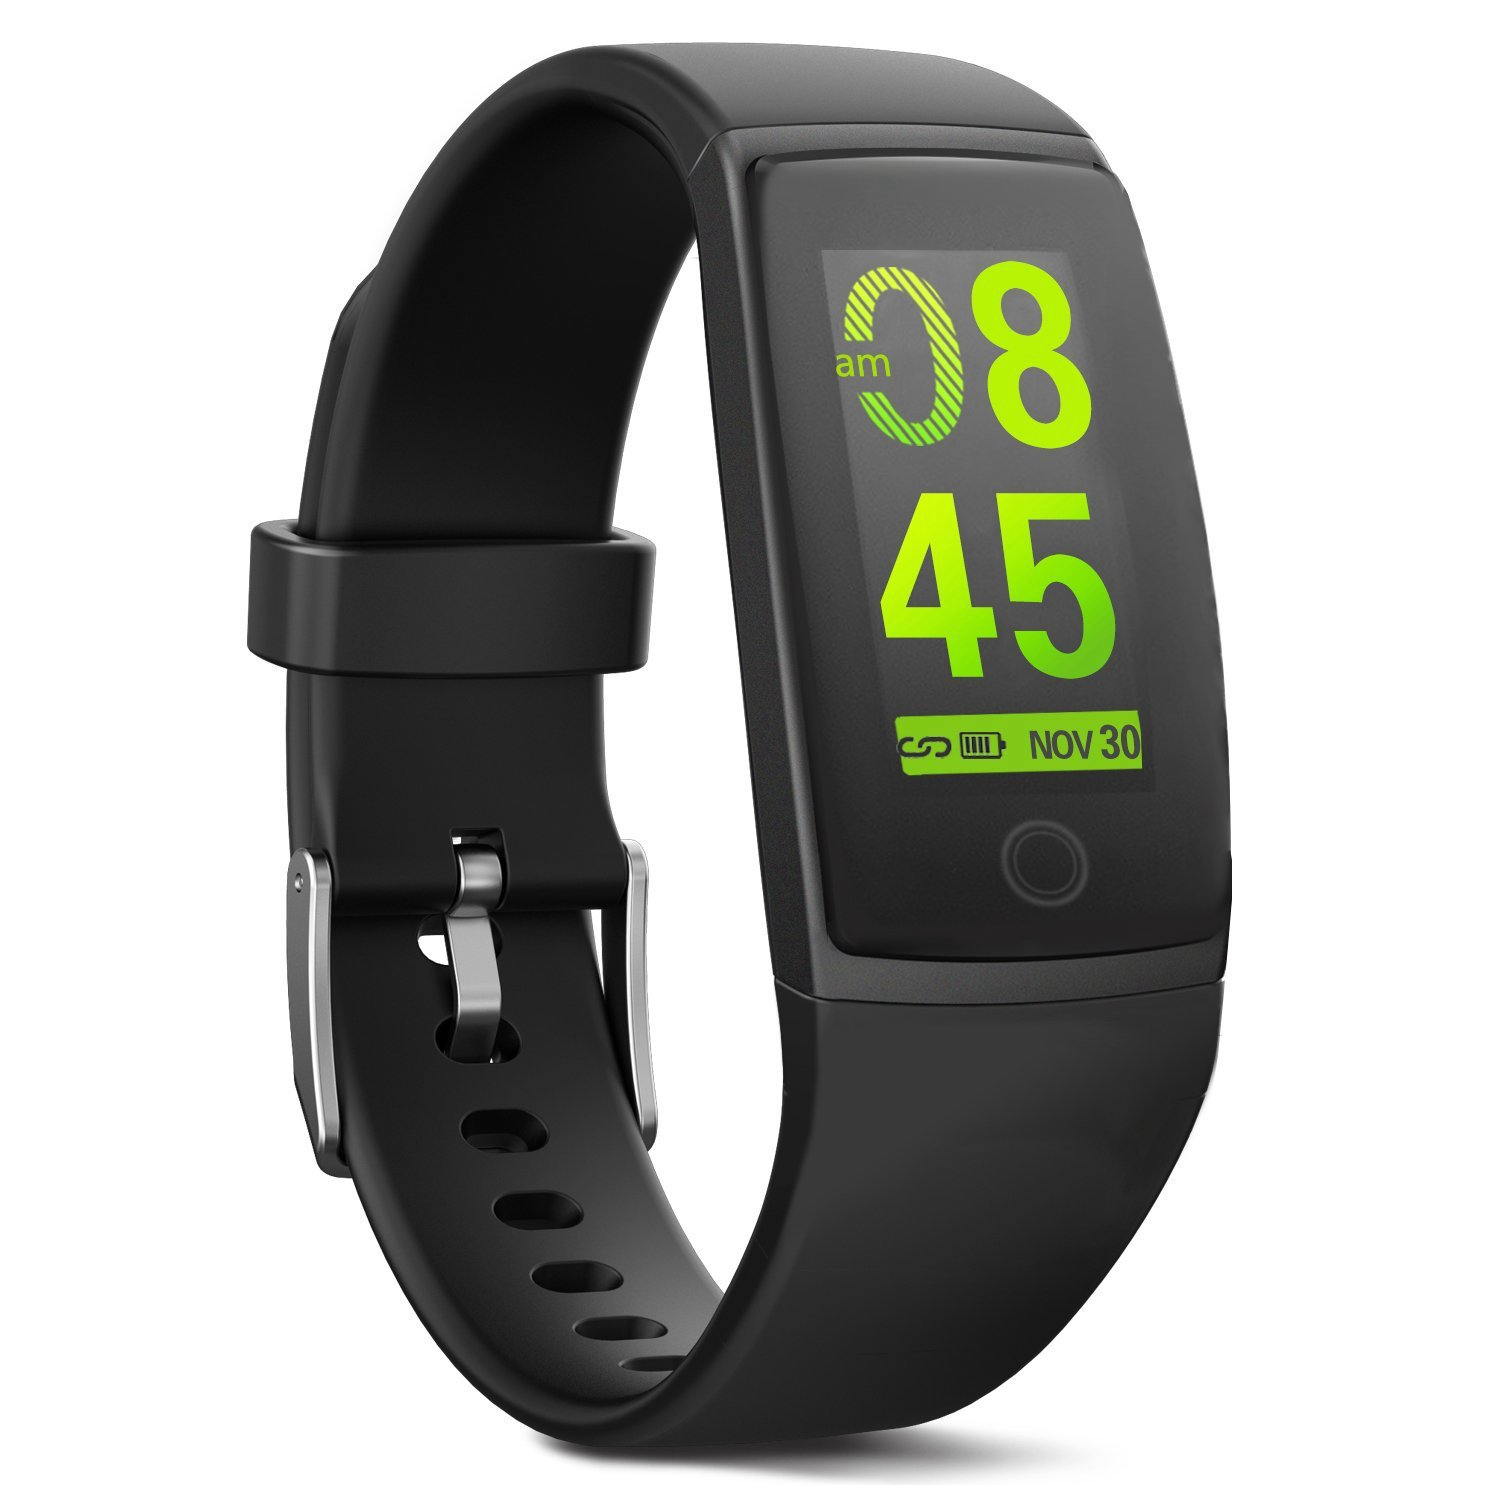 MorePro Waterproof Fitness Tracker, Color Screen Health Activity Tracker with Heart Rate Blood Pressure Monitor, Wearable Sport Pedometer Watch Calories Step Counter, Black